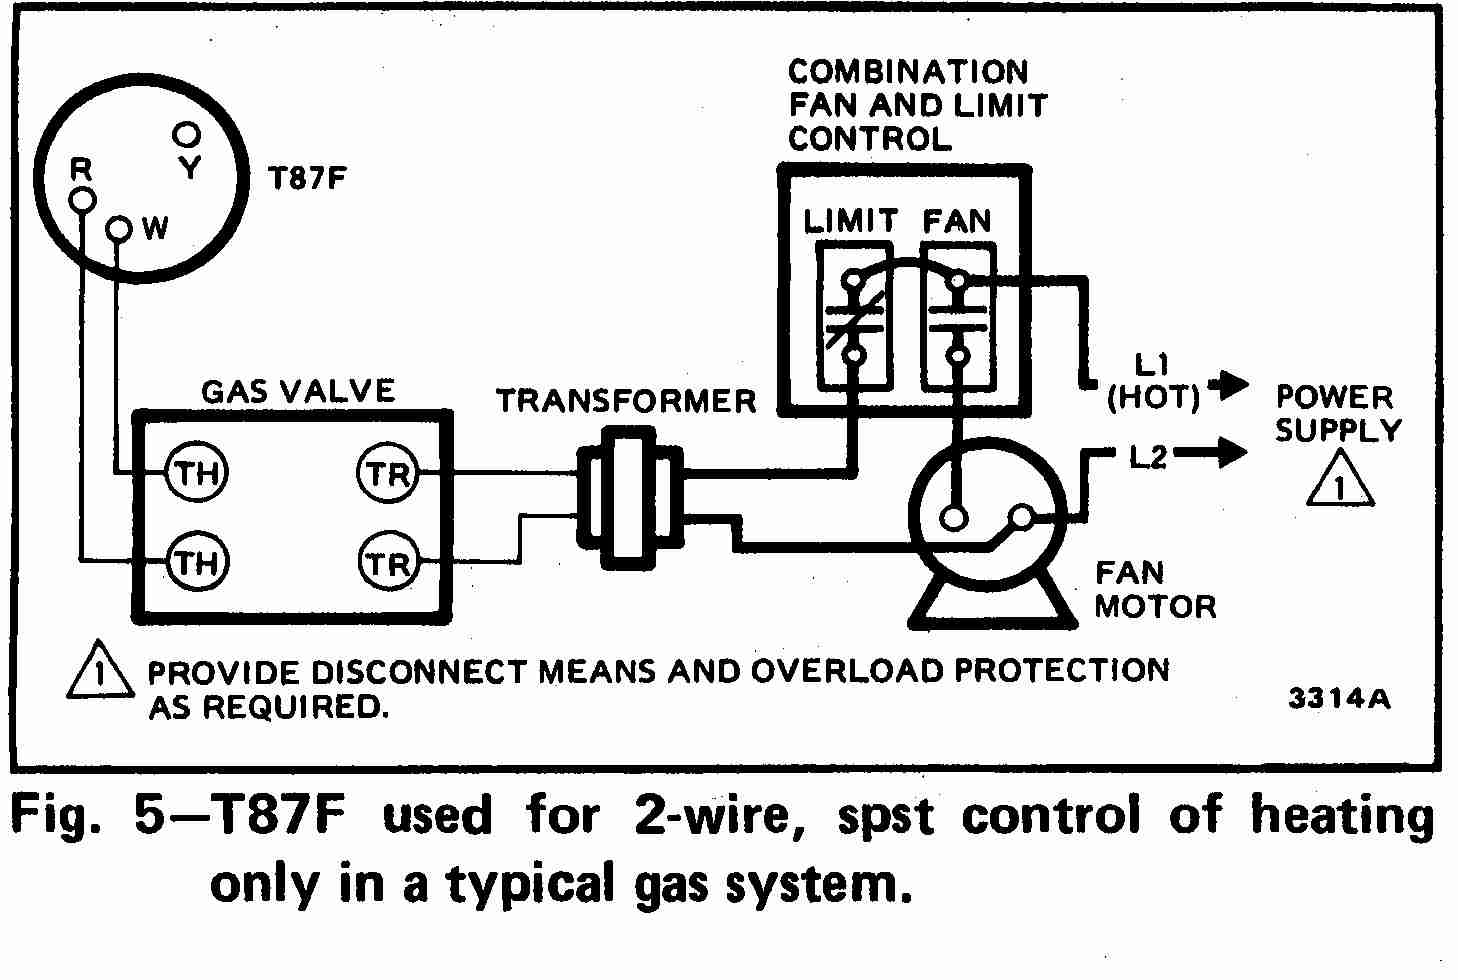 TT_T87F_0002_2Wg_DJF guide to wiring connections for room thermostats honeywell rth2510 wiring diagrams at bayanpartner.co